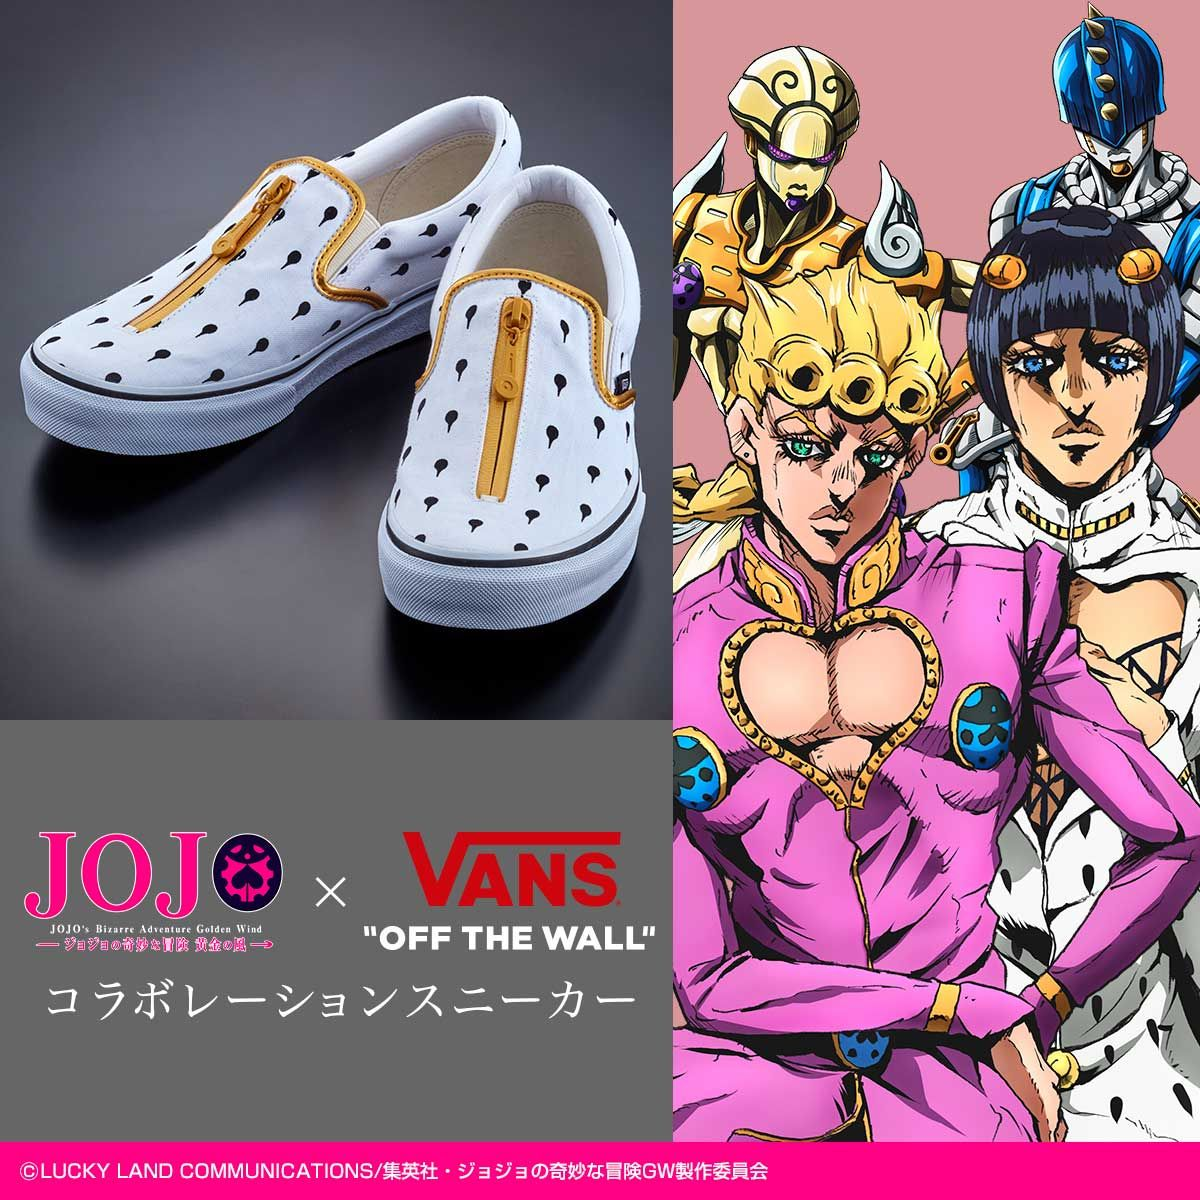 5649d28cc19 JoJo s Bizarre Adventure x VANS Collaboration Produces a Pair of Unique  Part 5 Sneakers – OTAQUEST